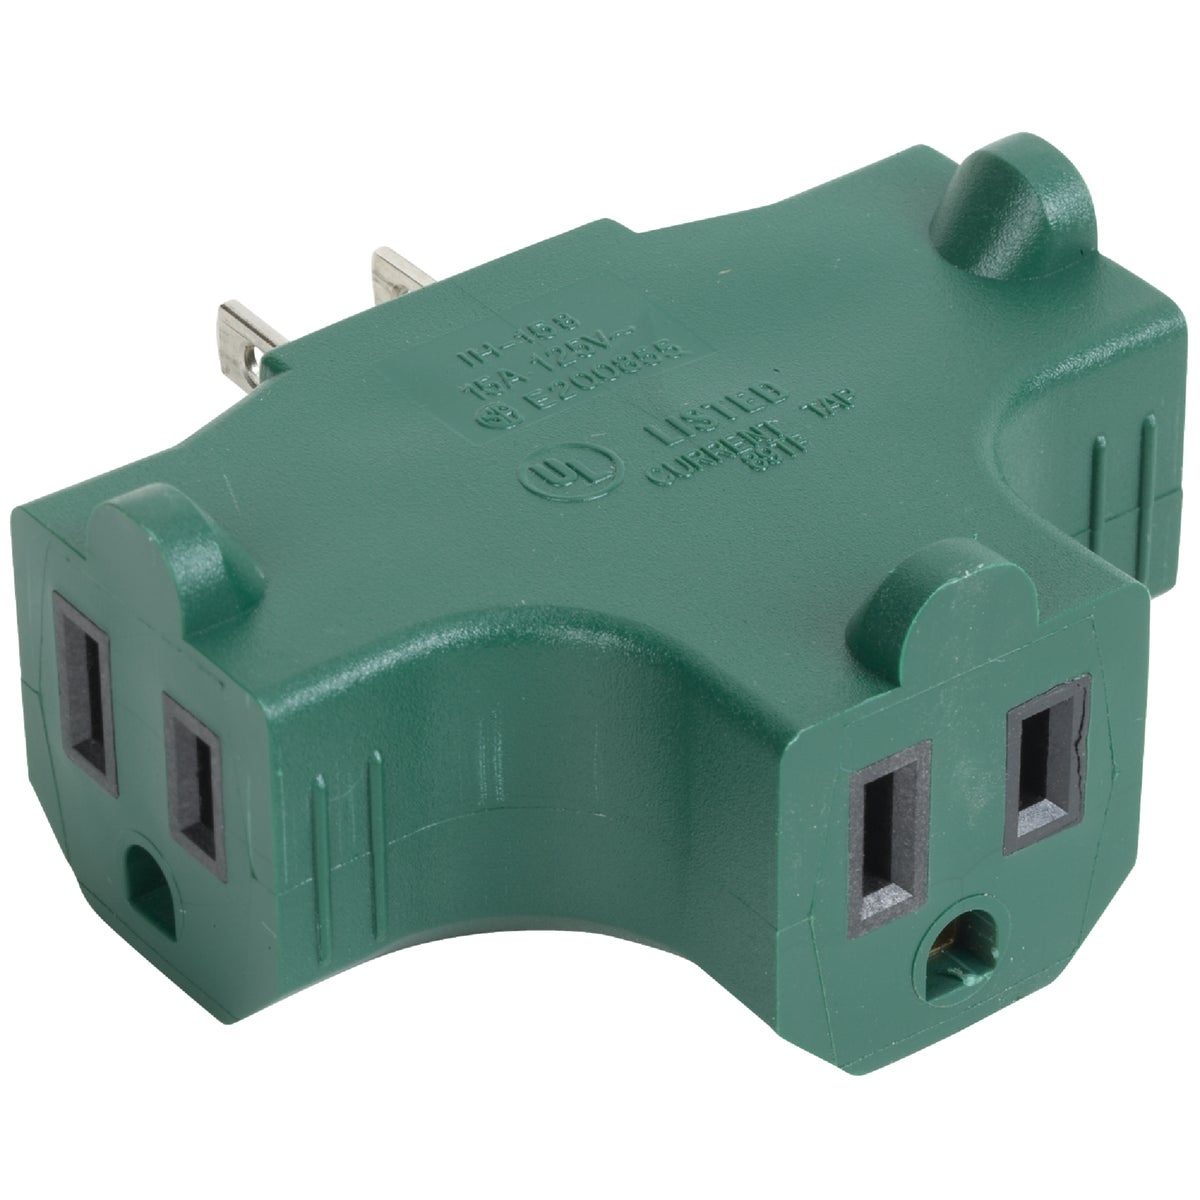 BULK GREEN CUBE TAP - ADAPTER-GR BK by Do it Best